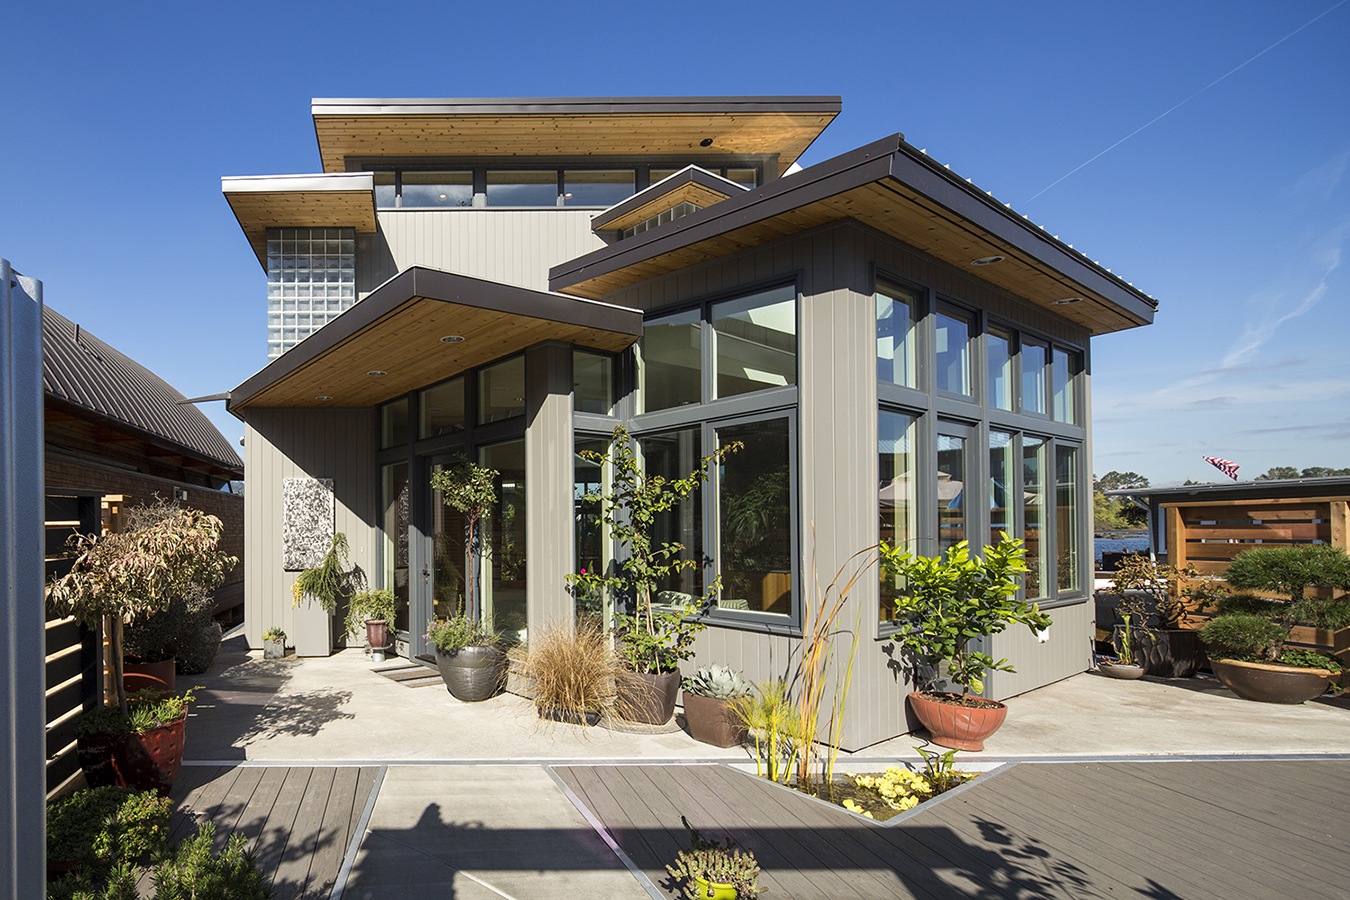 5th annual portland modern home tour features best in for Modern residential architects